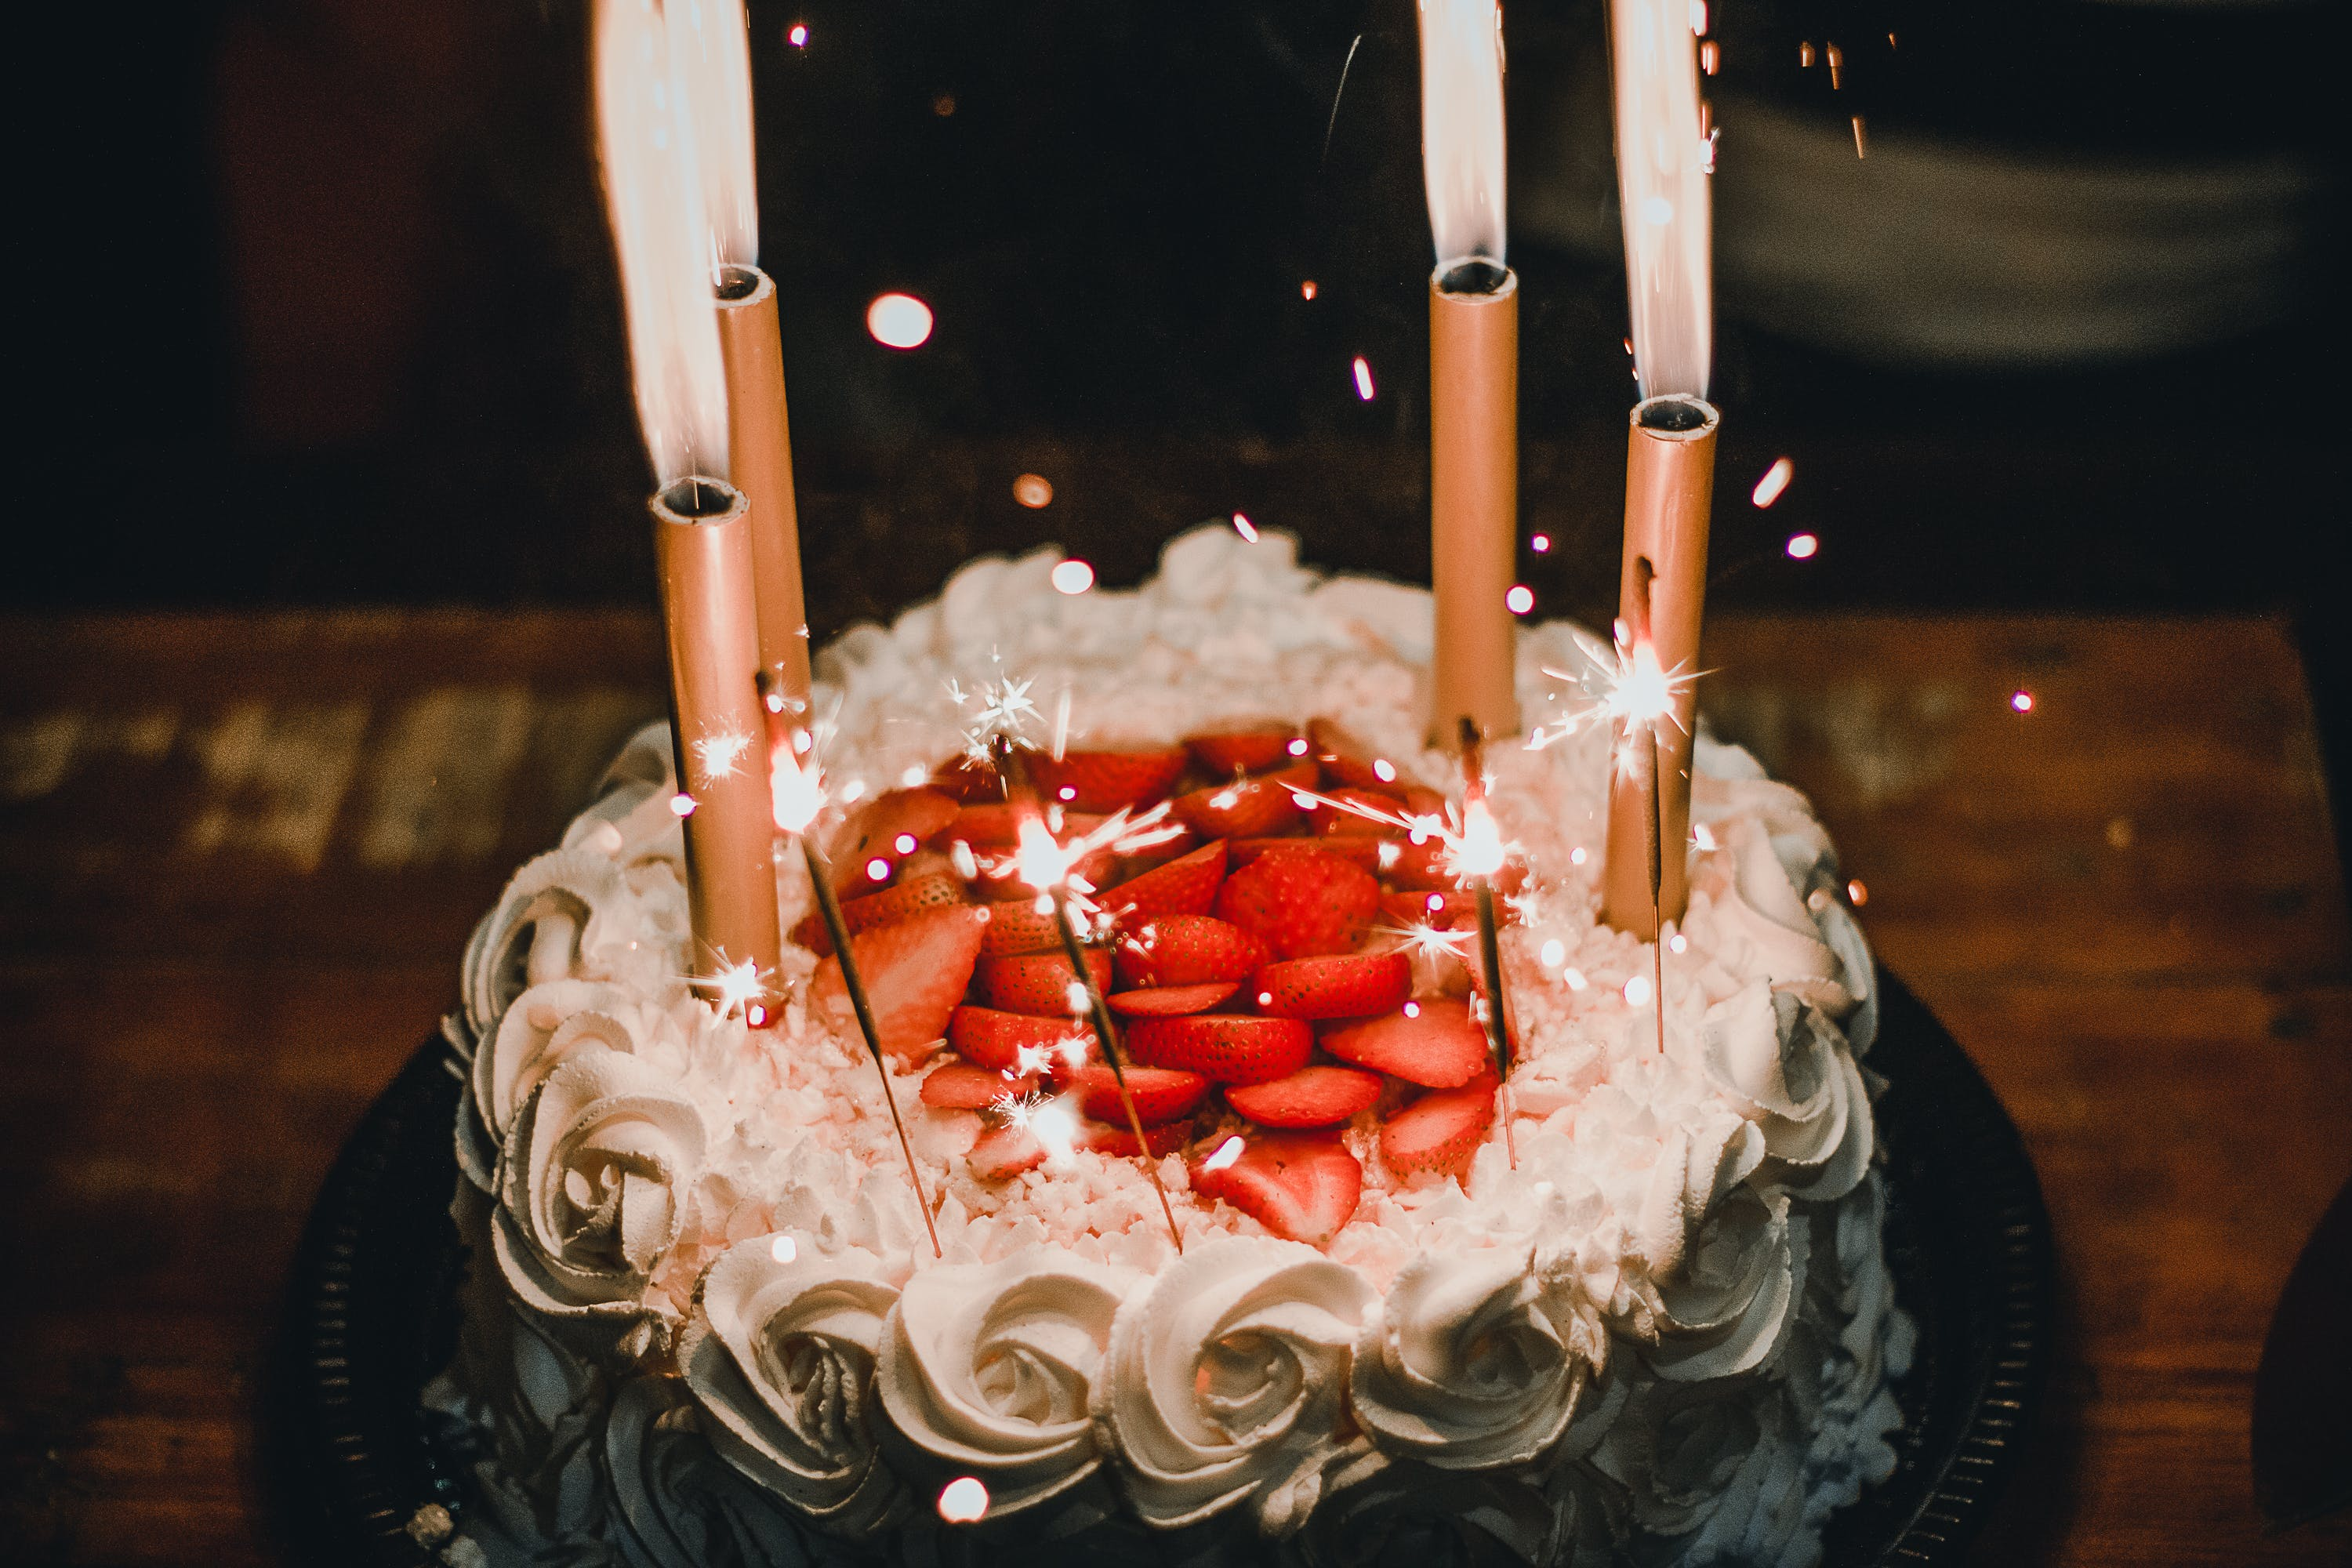 Lighted Candles on White Icing-covered Cake